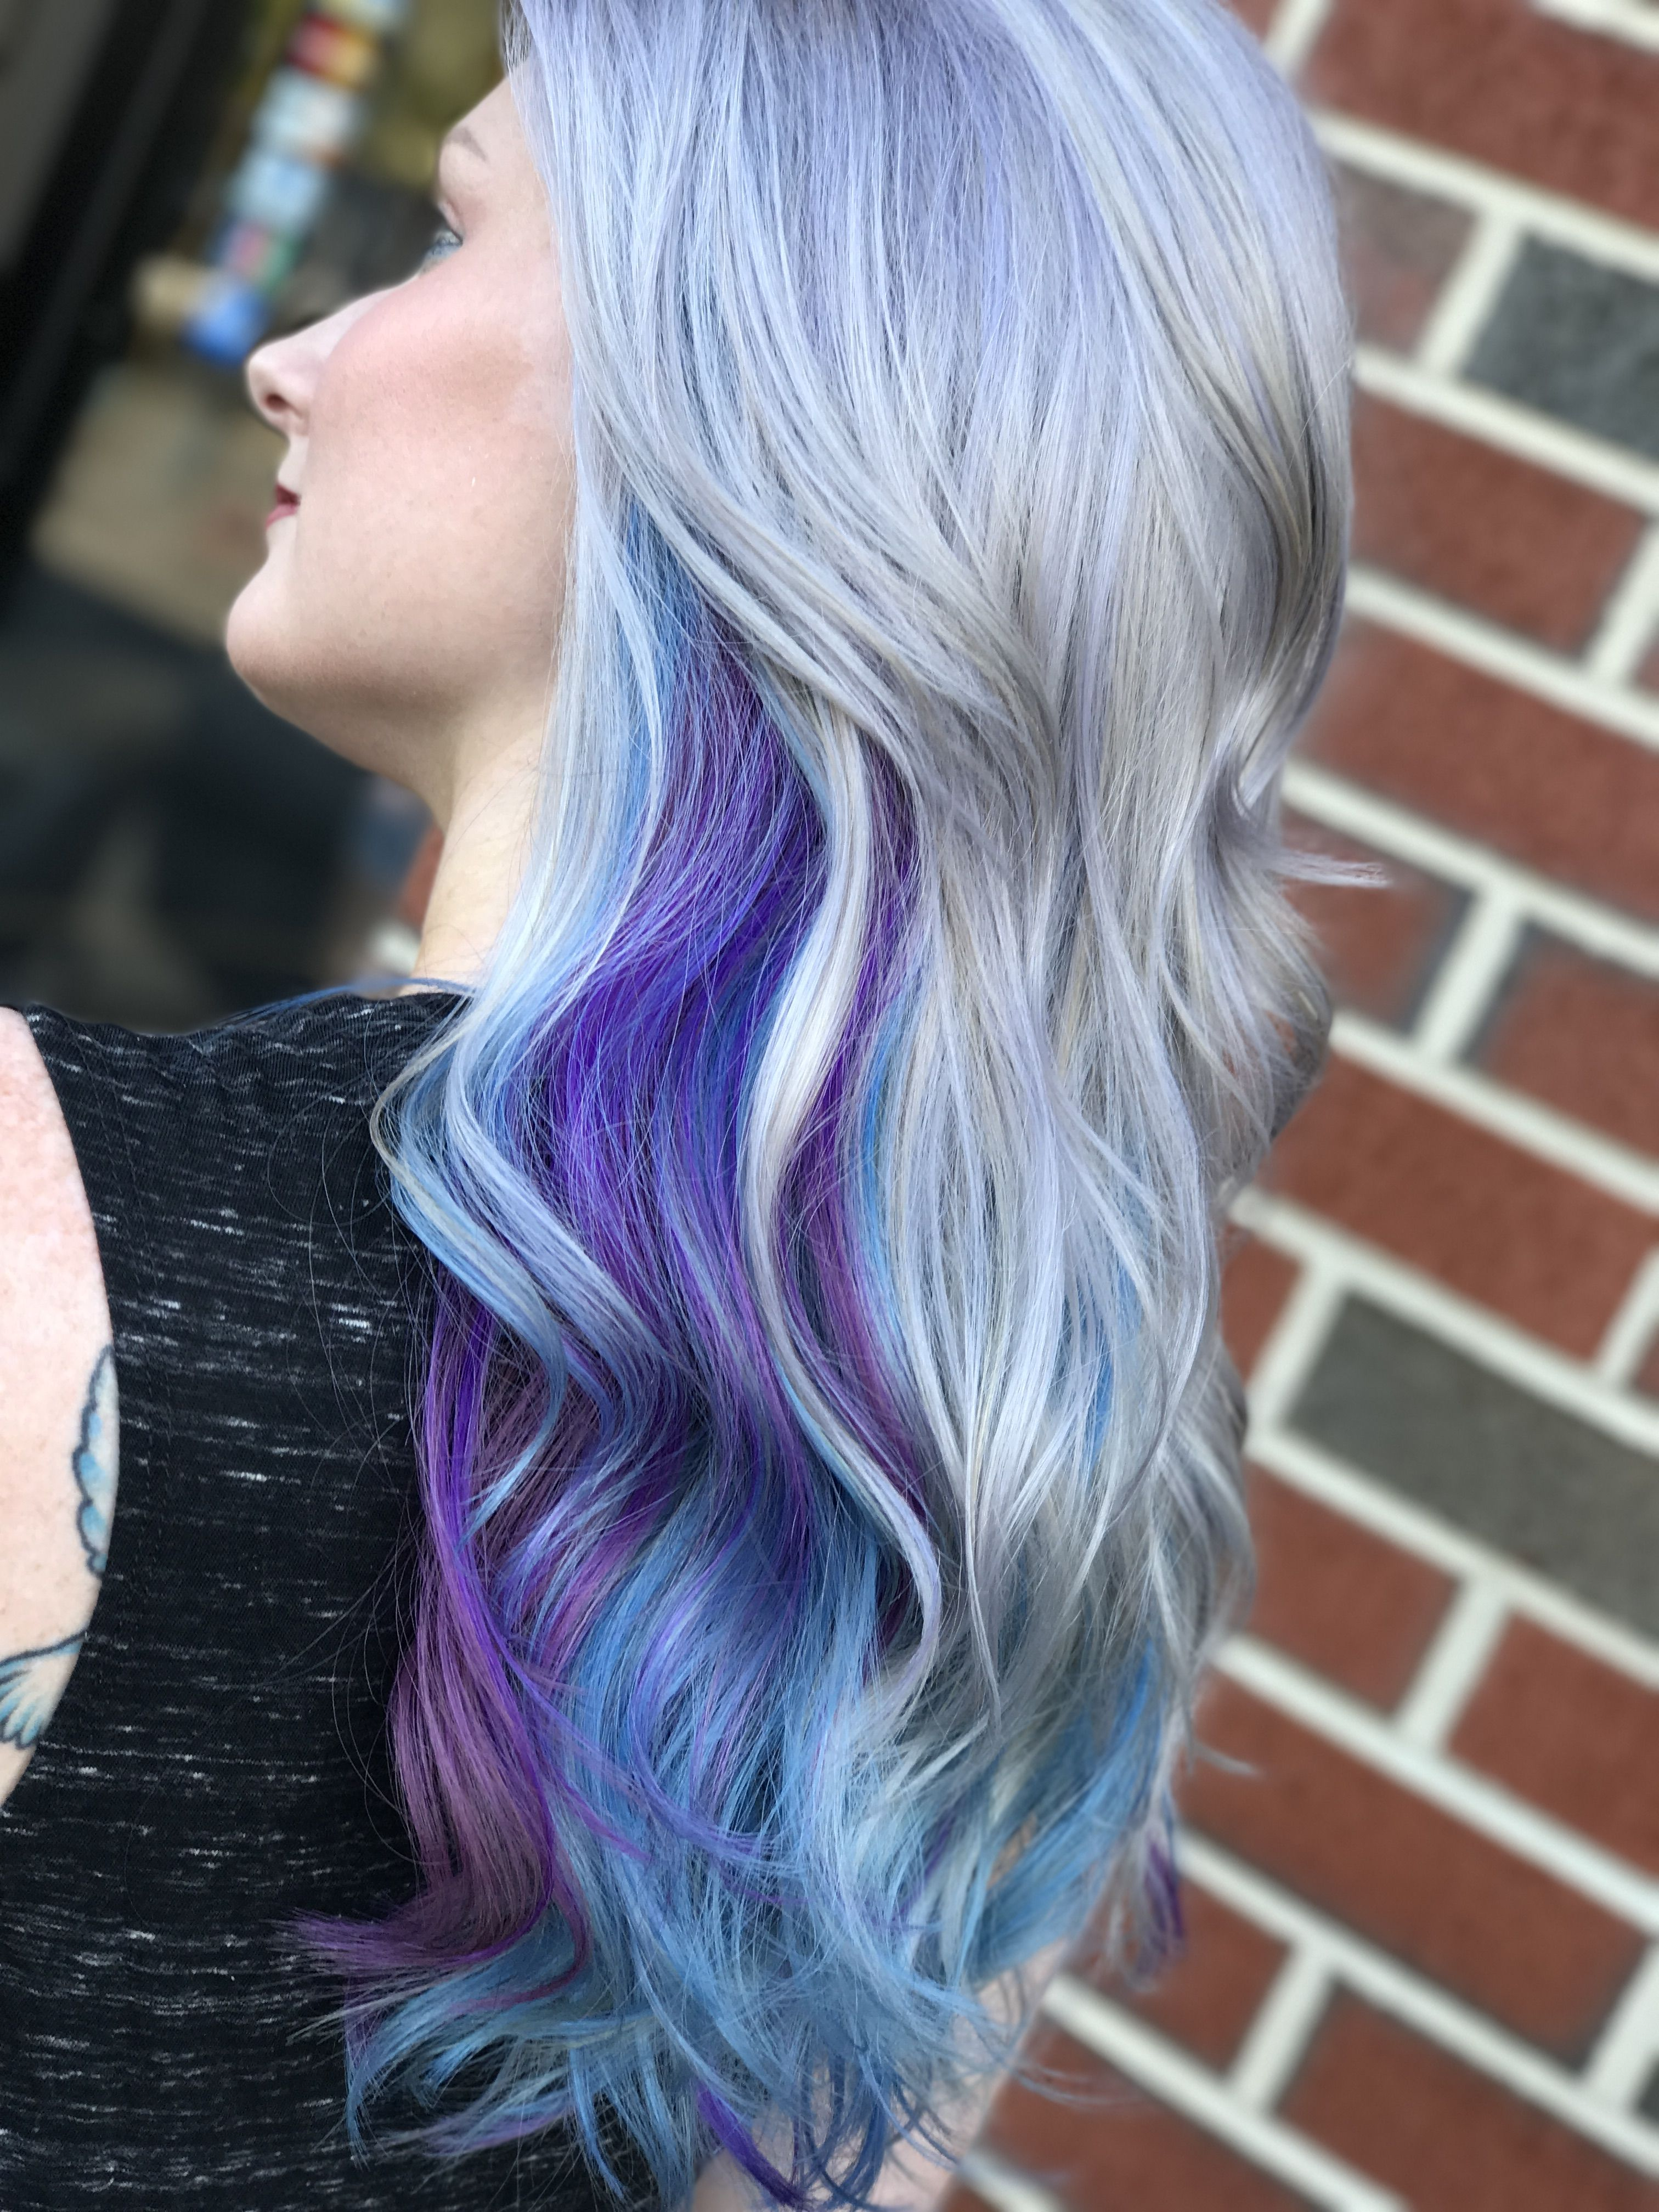 Silver Purple Blue Hair Silver Guytang 5 Min Toner Purple Joico Color Intensity Orchid And Lilac Clear Blue Joico Color Blue Hair Silver Hair Joico Color